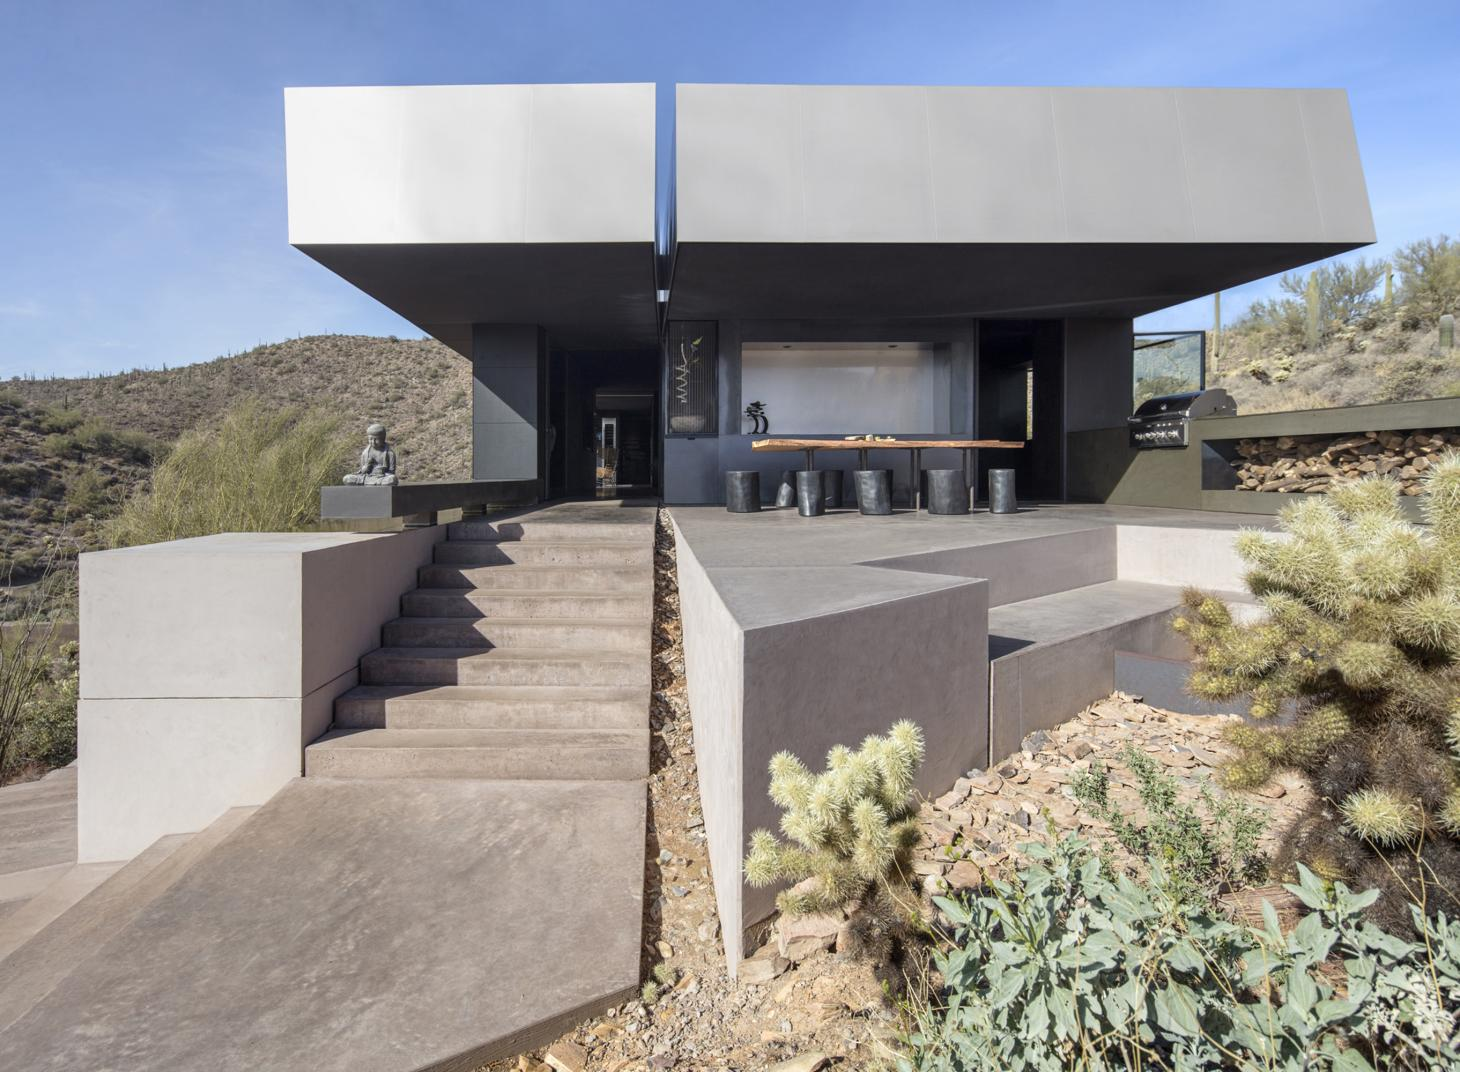 Hidden Valley house in Arizona designed by Wendell Burnette Architects